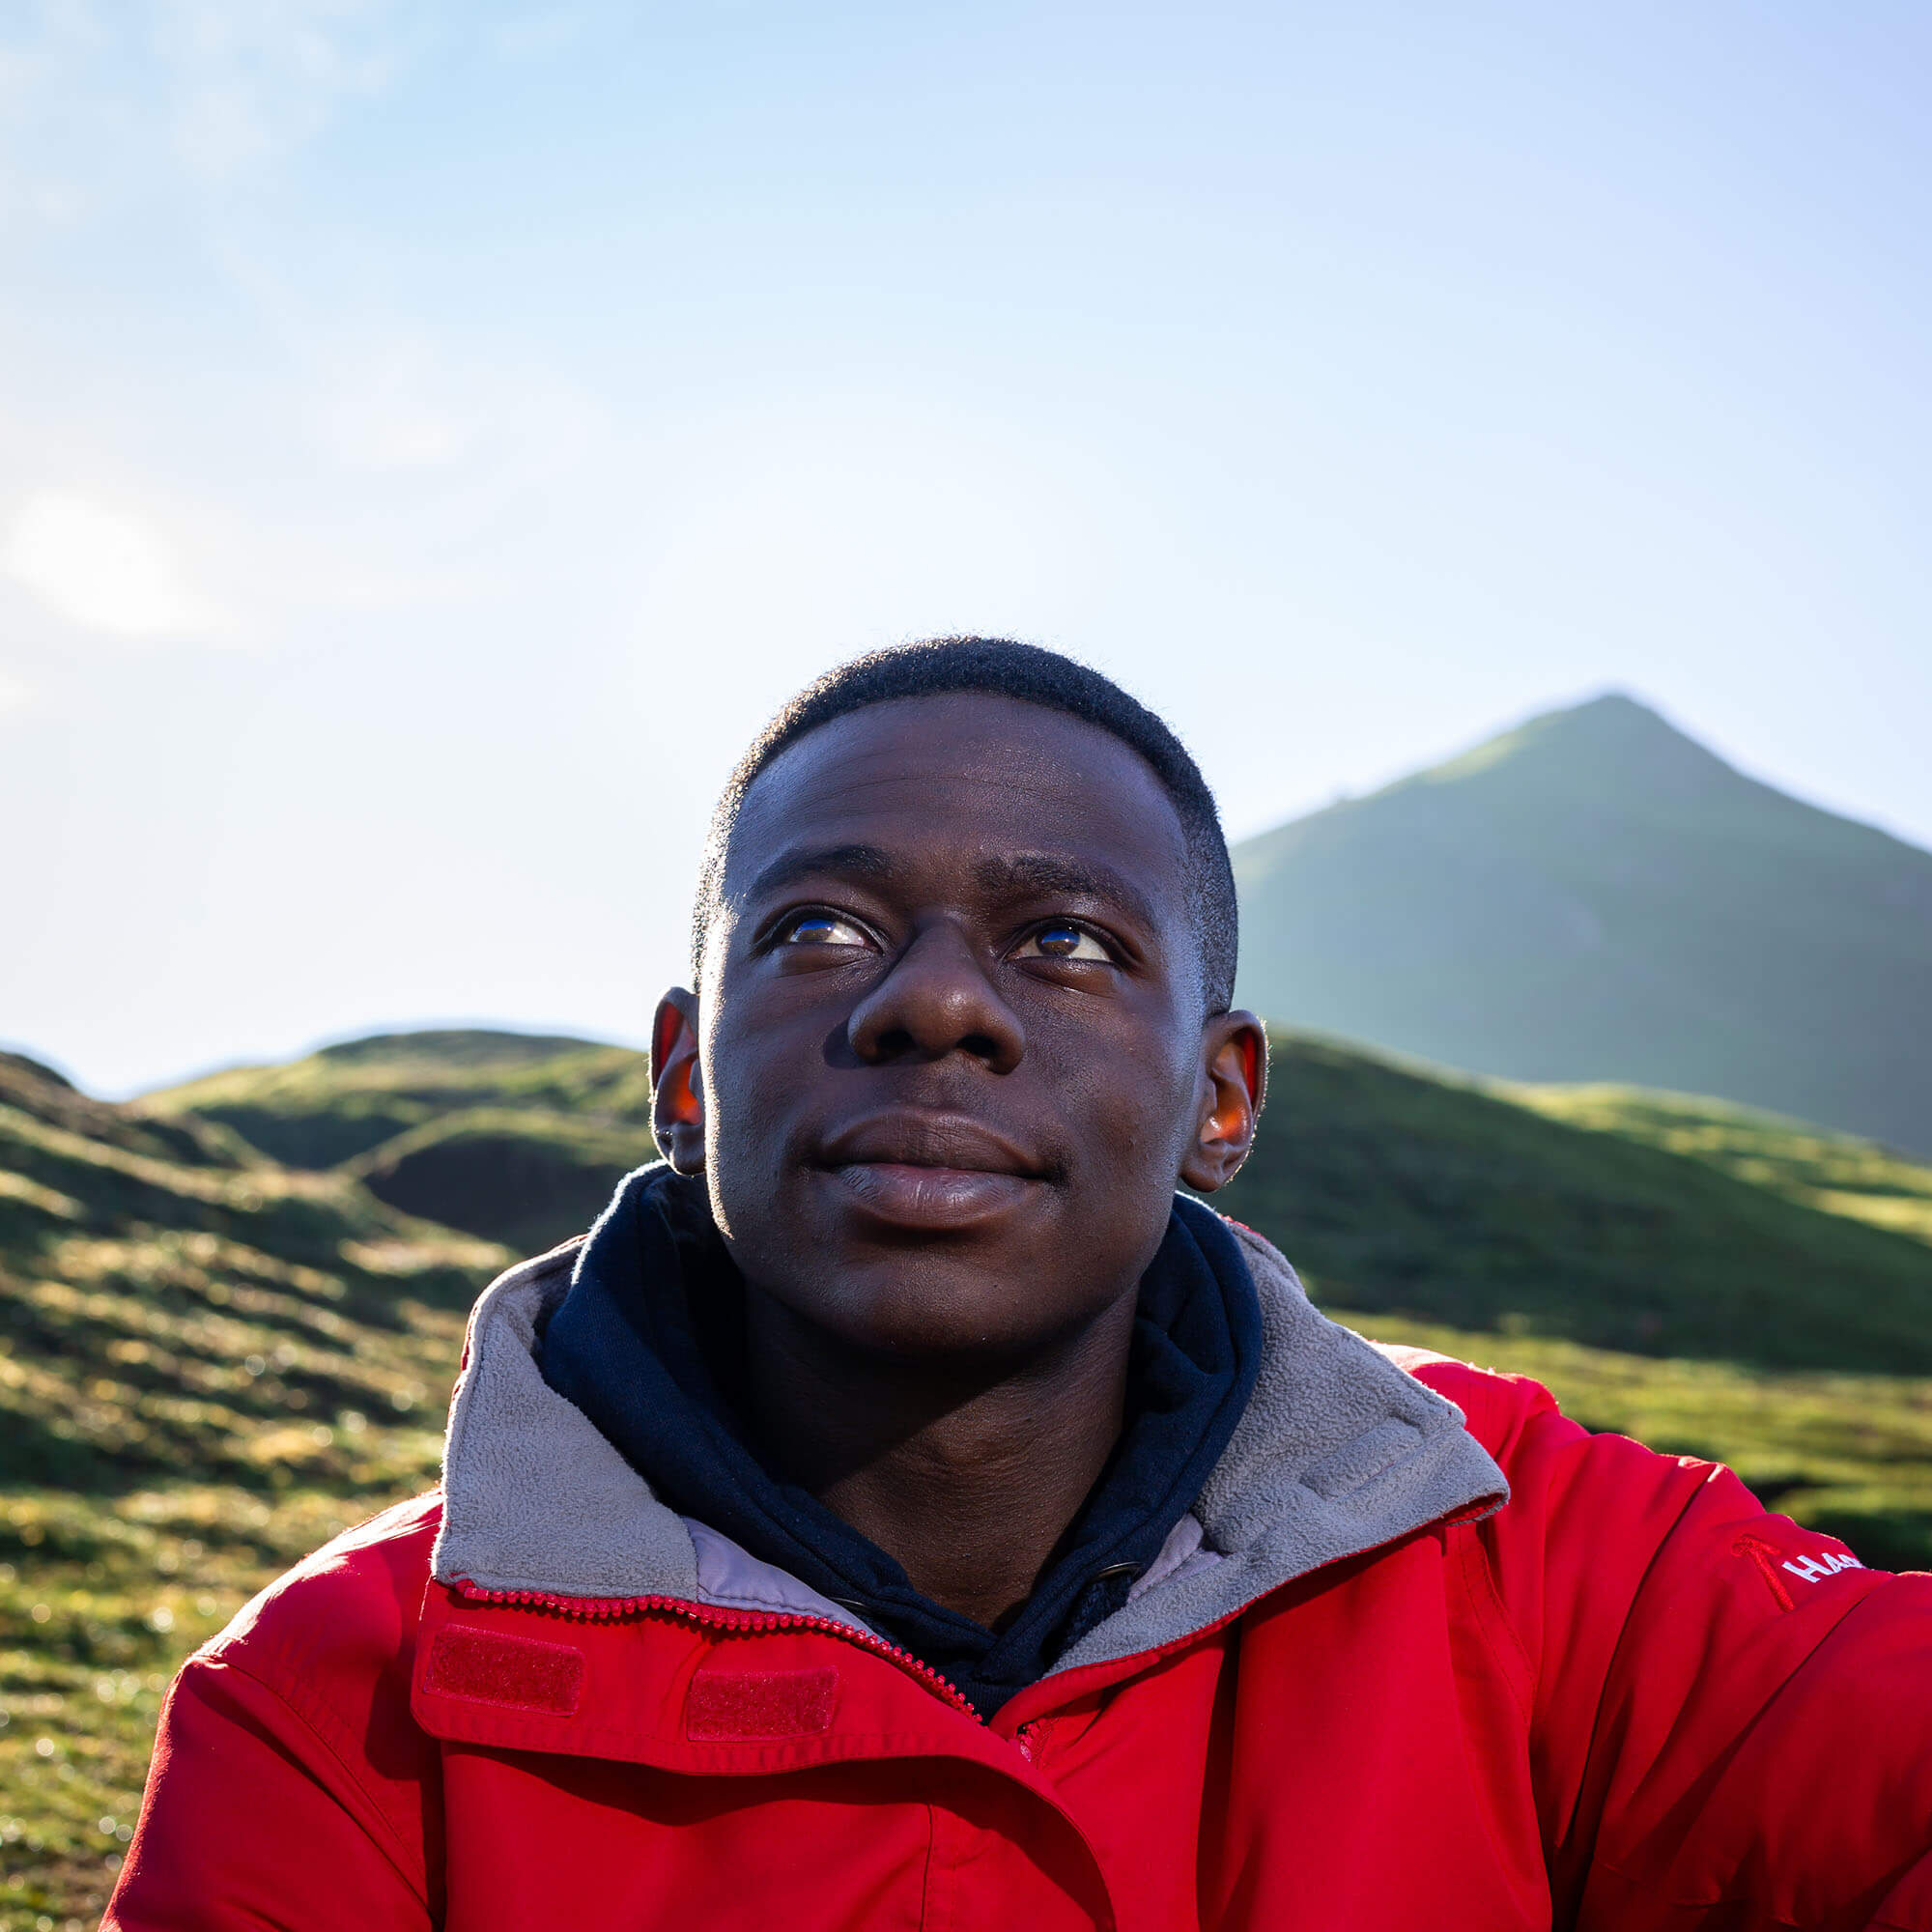 A University of Derby male student sits in the outdoors, wearing a red outdoor jacket, he looks up towards the blue sky with green grass and mountains behind him